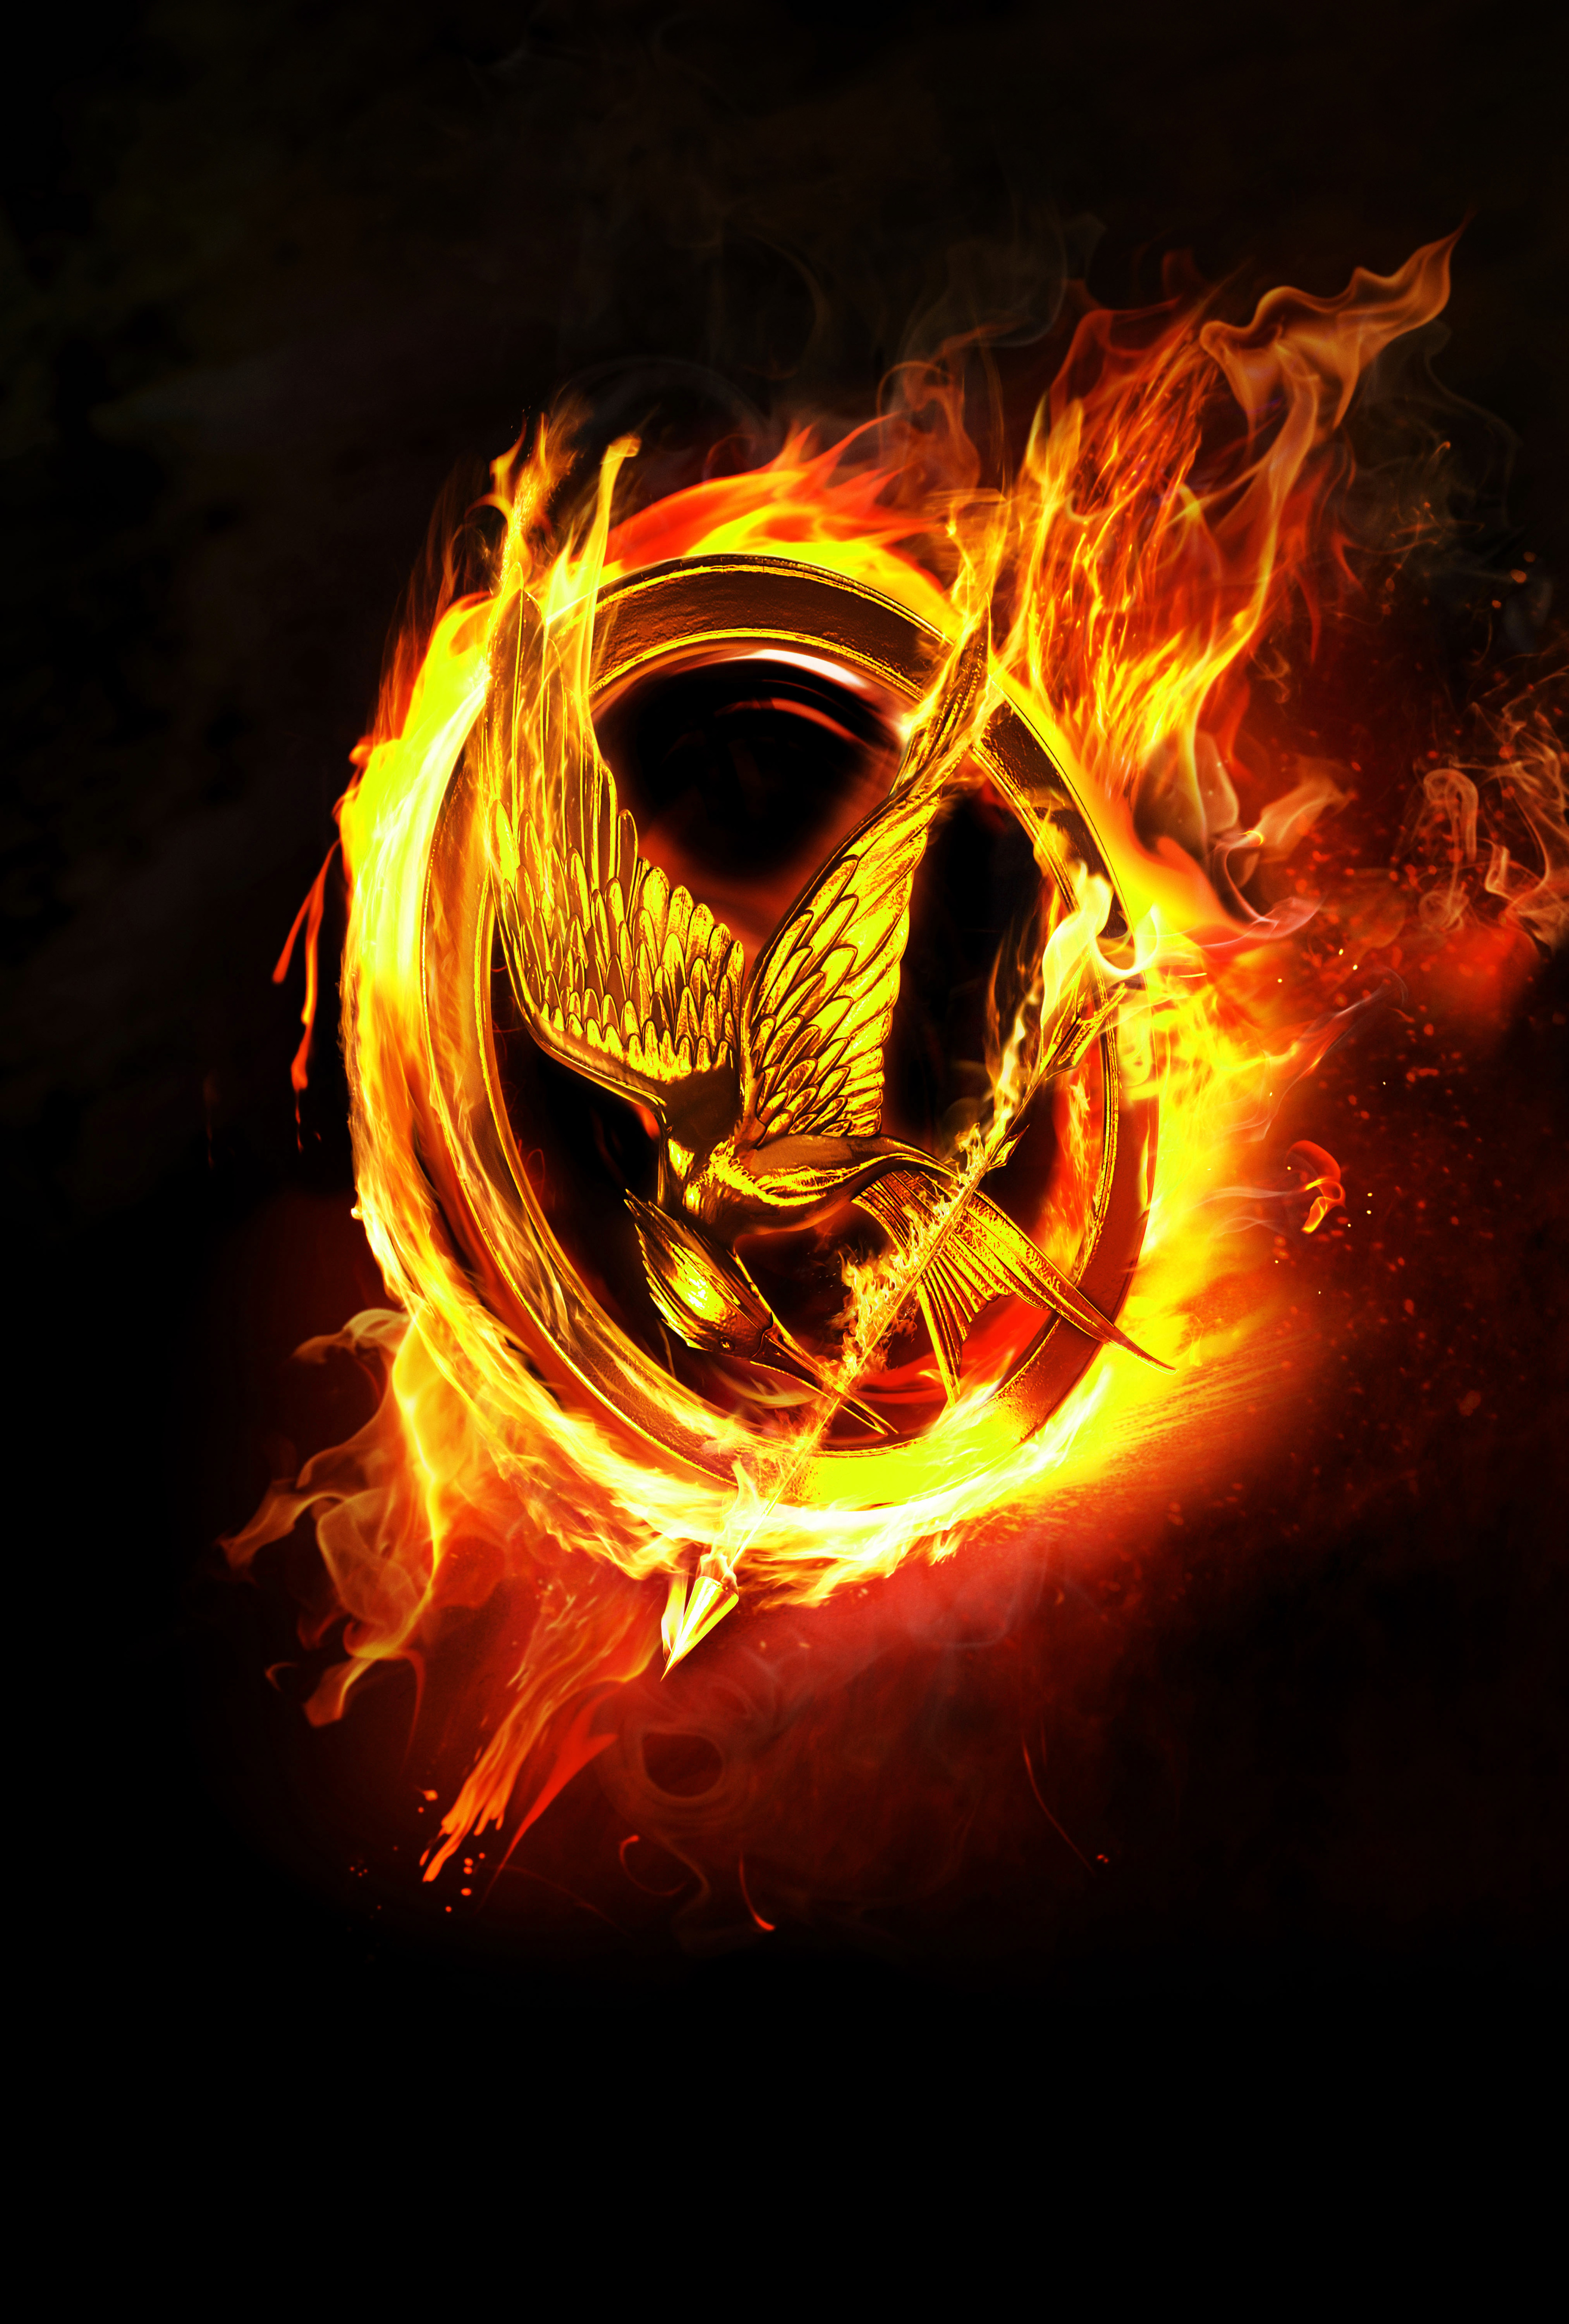 Hq Poster Untagged The Hunger Games Photo 32807422